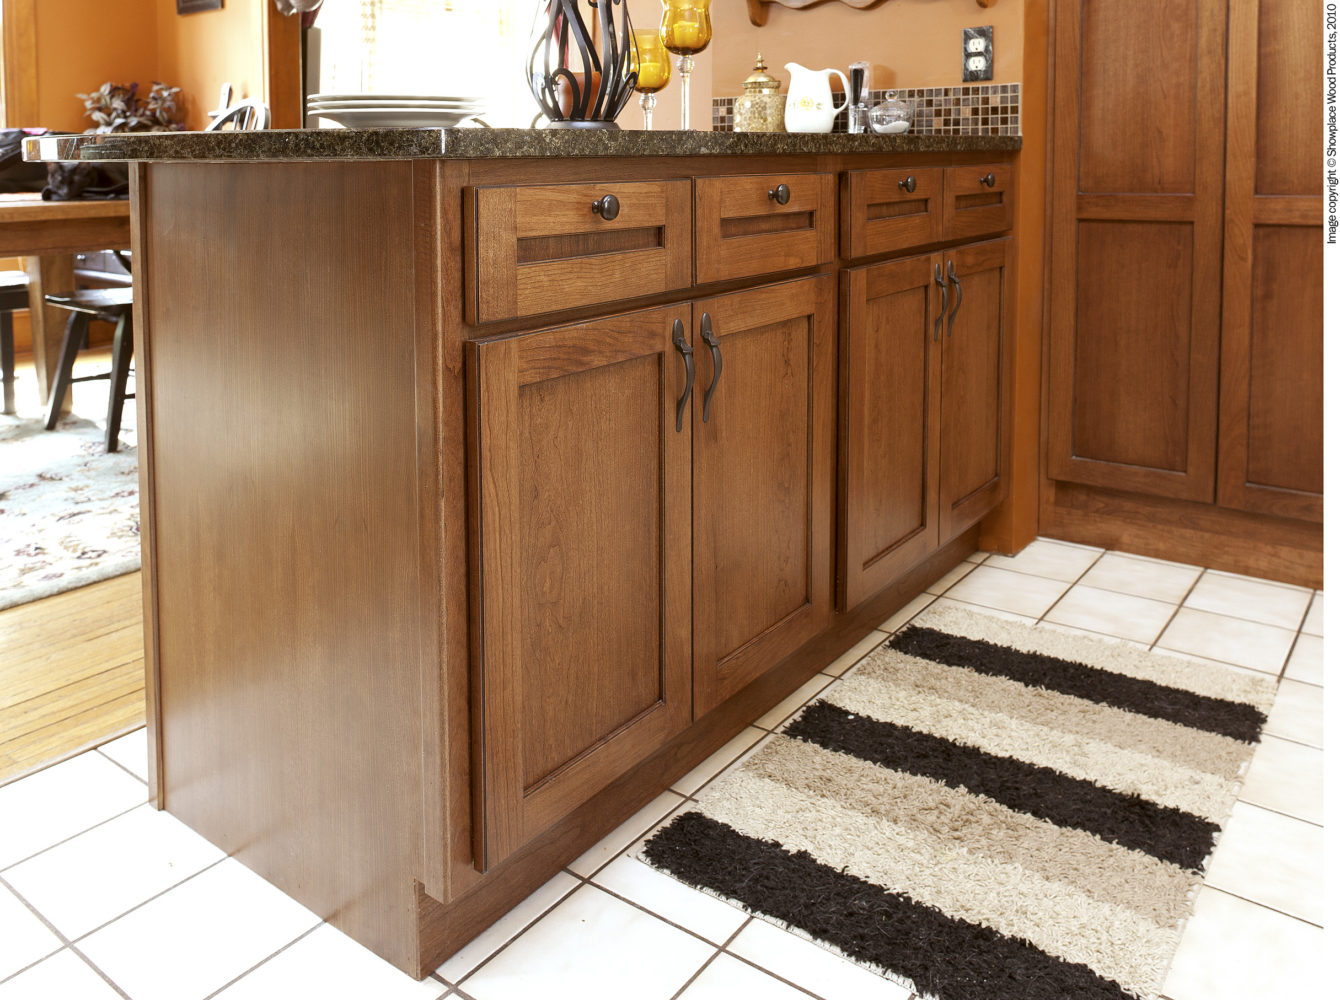 After Cabinet Refacing